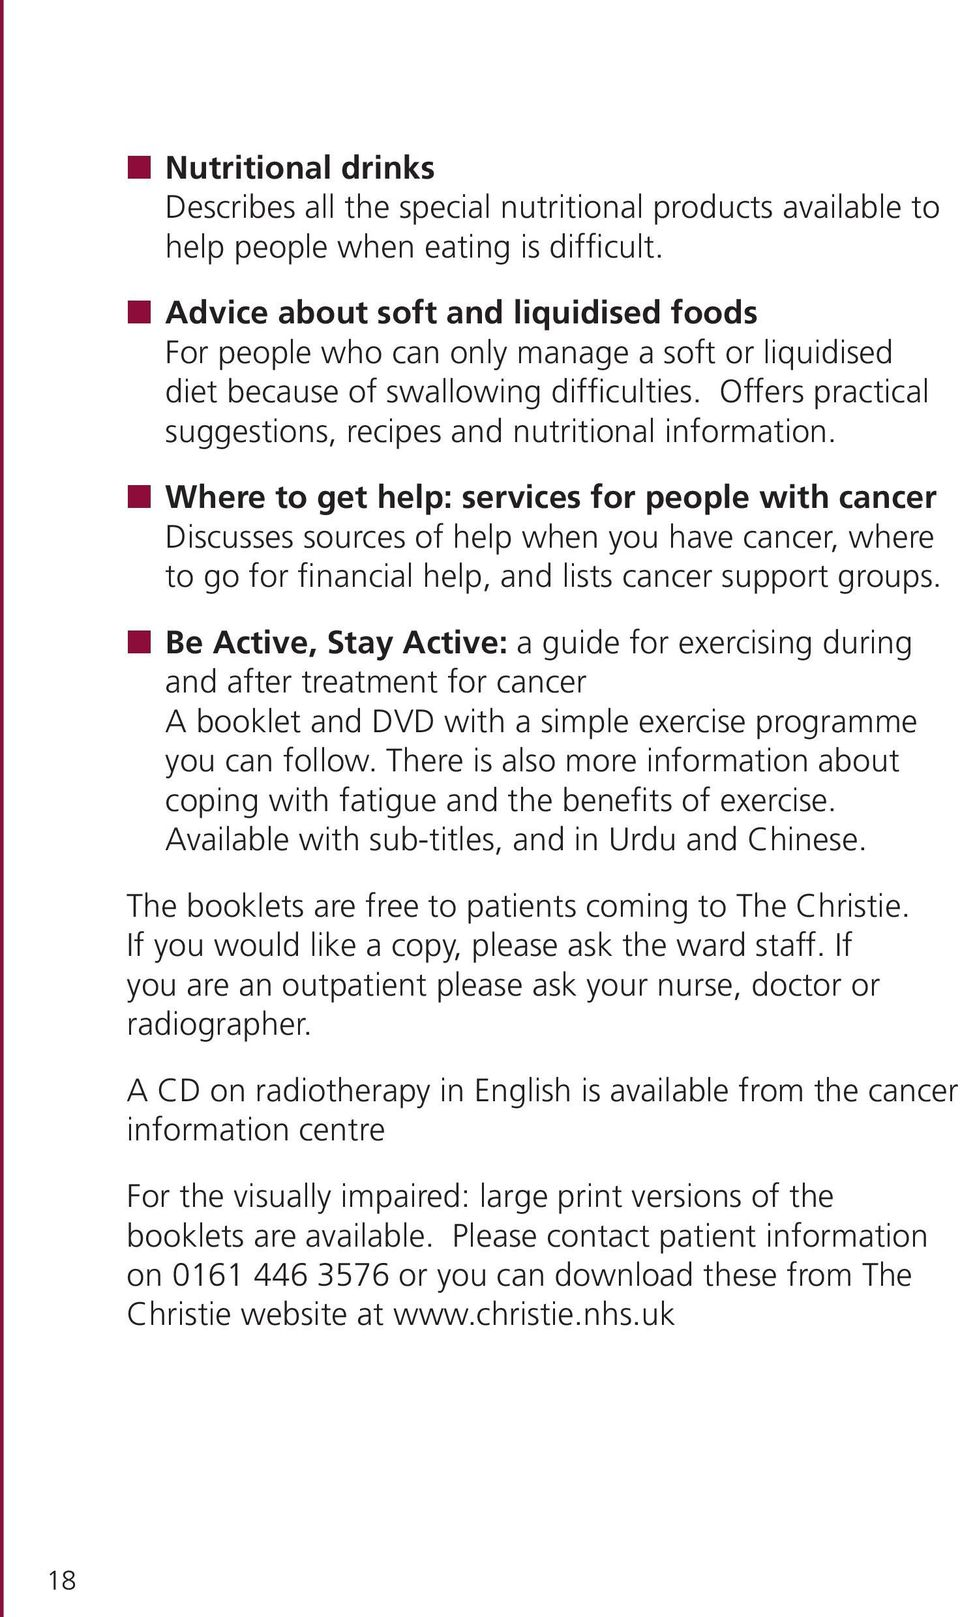 n Where to get help: services for people with cancer Discusses sources of help when you have cancer, where to go for financial help, and lists cancer support groups.